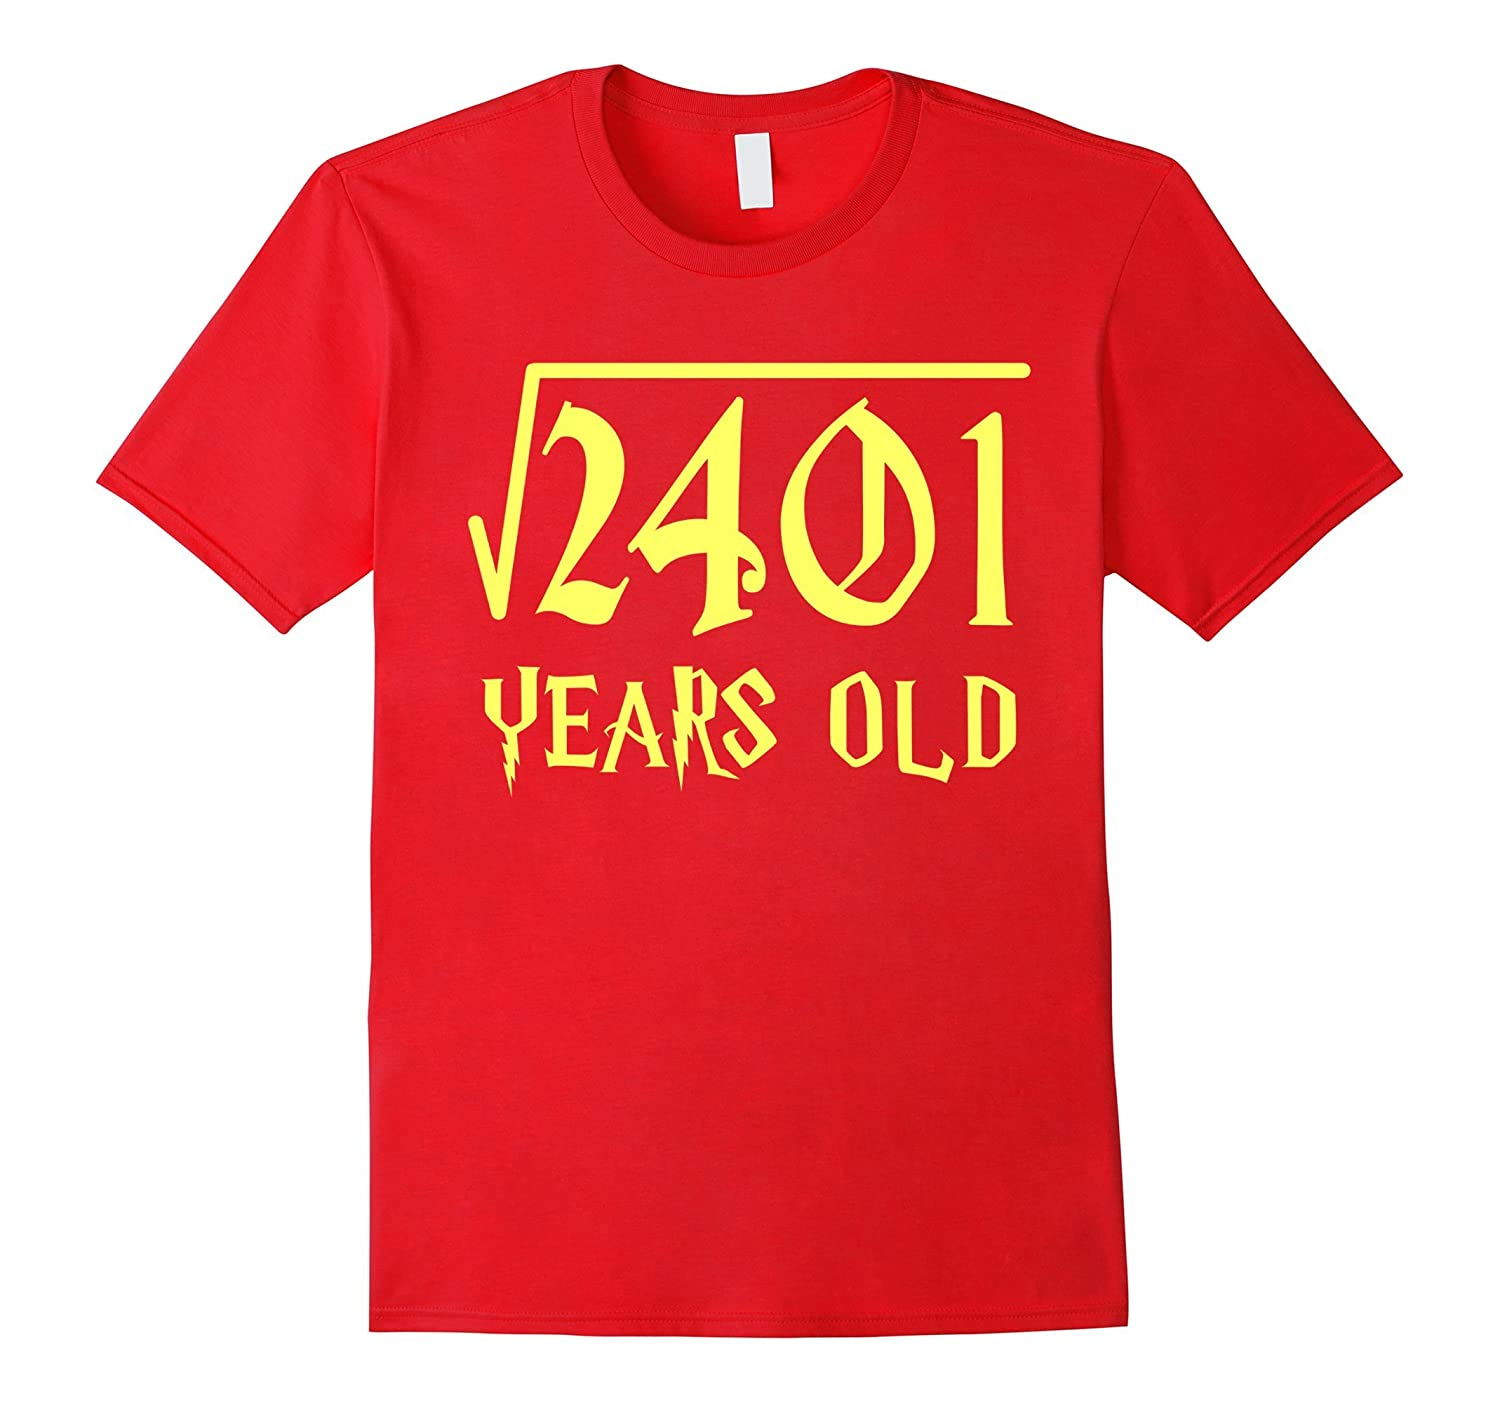 Square Root of 2401 49 Years Old 49th Birthday T-Shirt-CL